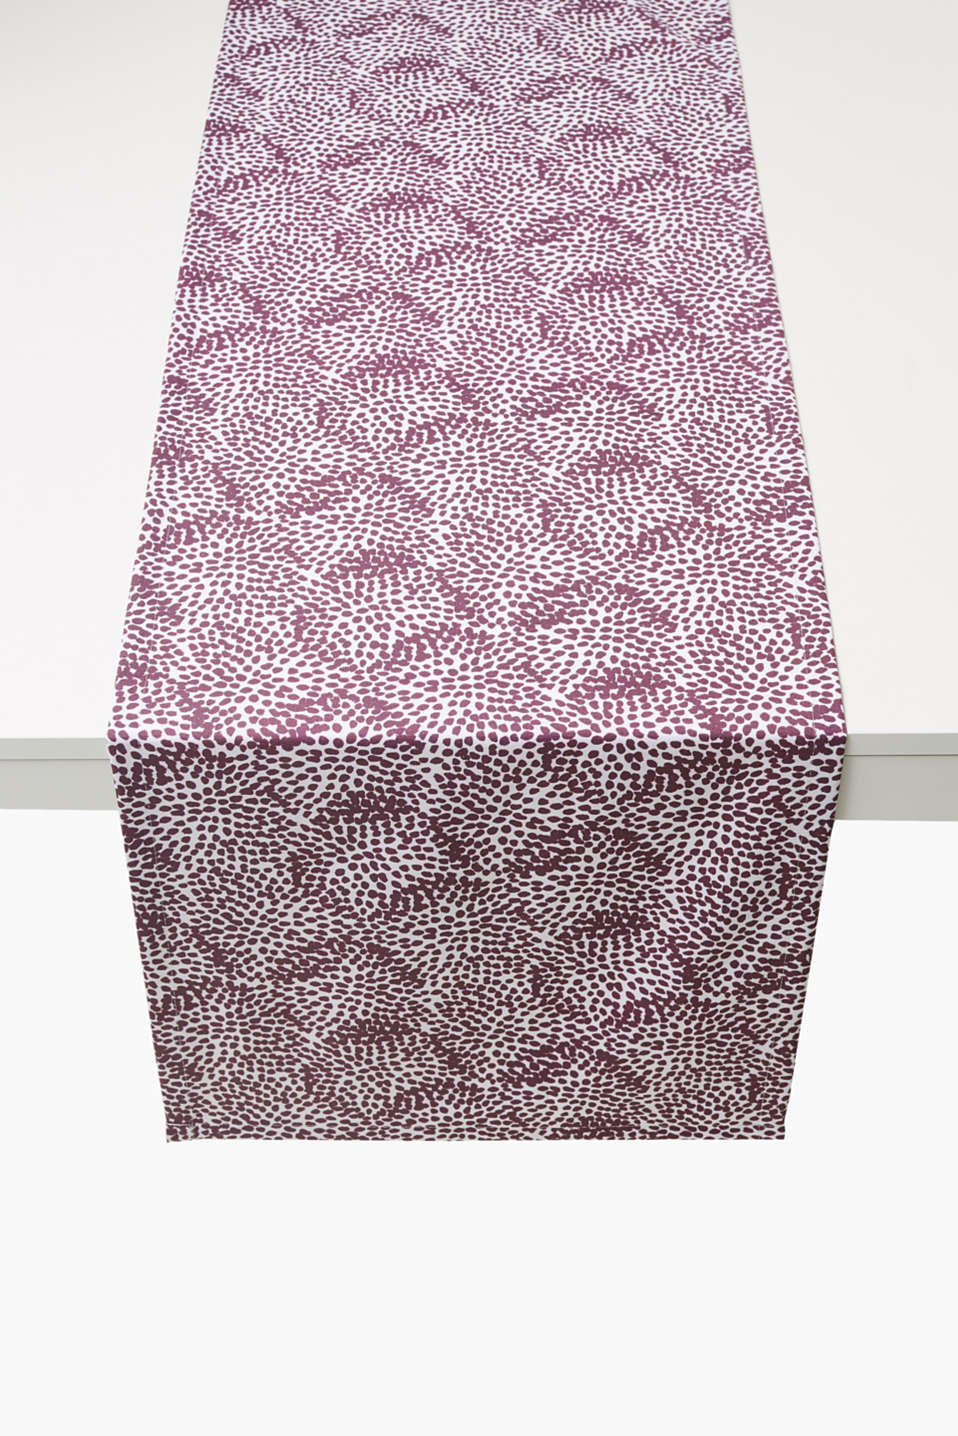 Table runner with an abstract floral print, made of a digitally printed cotton blend (45 x 140 cm)